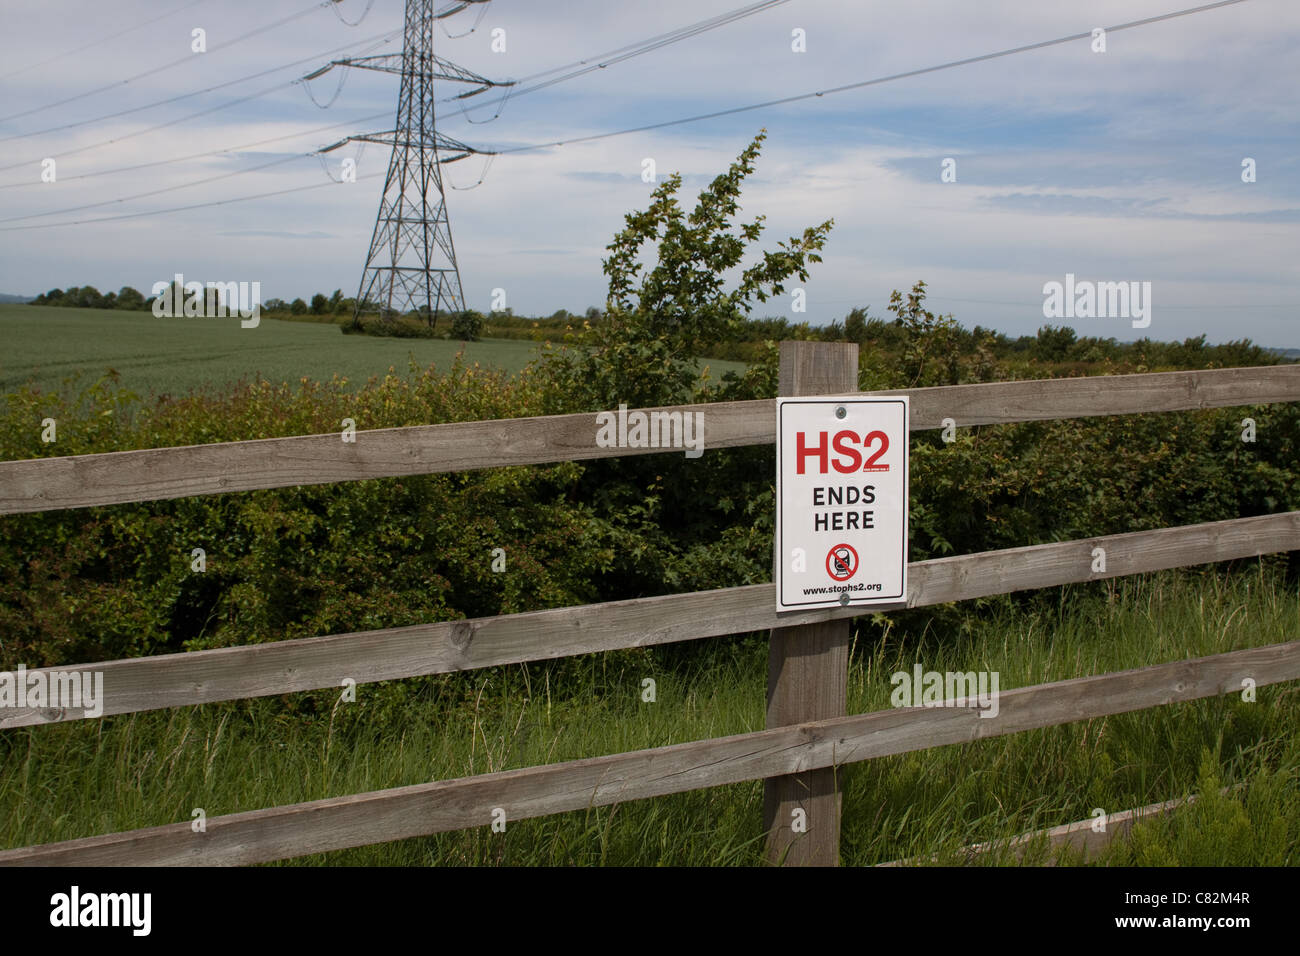 Sign indicating the future location of the Hight Speed 2 (HS2) railway line through Wendover in the Chilterns. - Stock Image